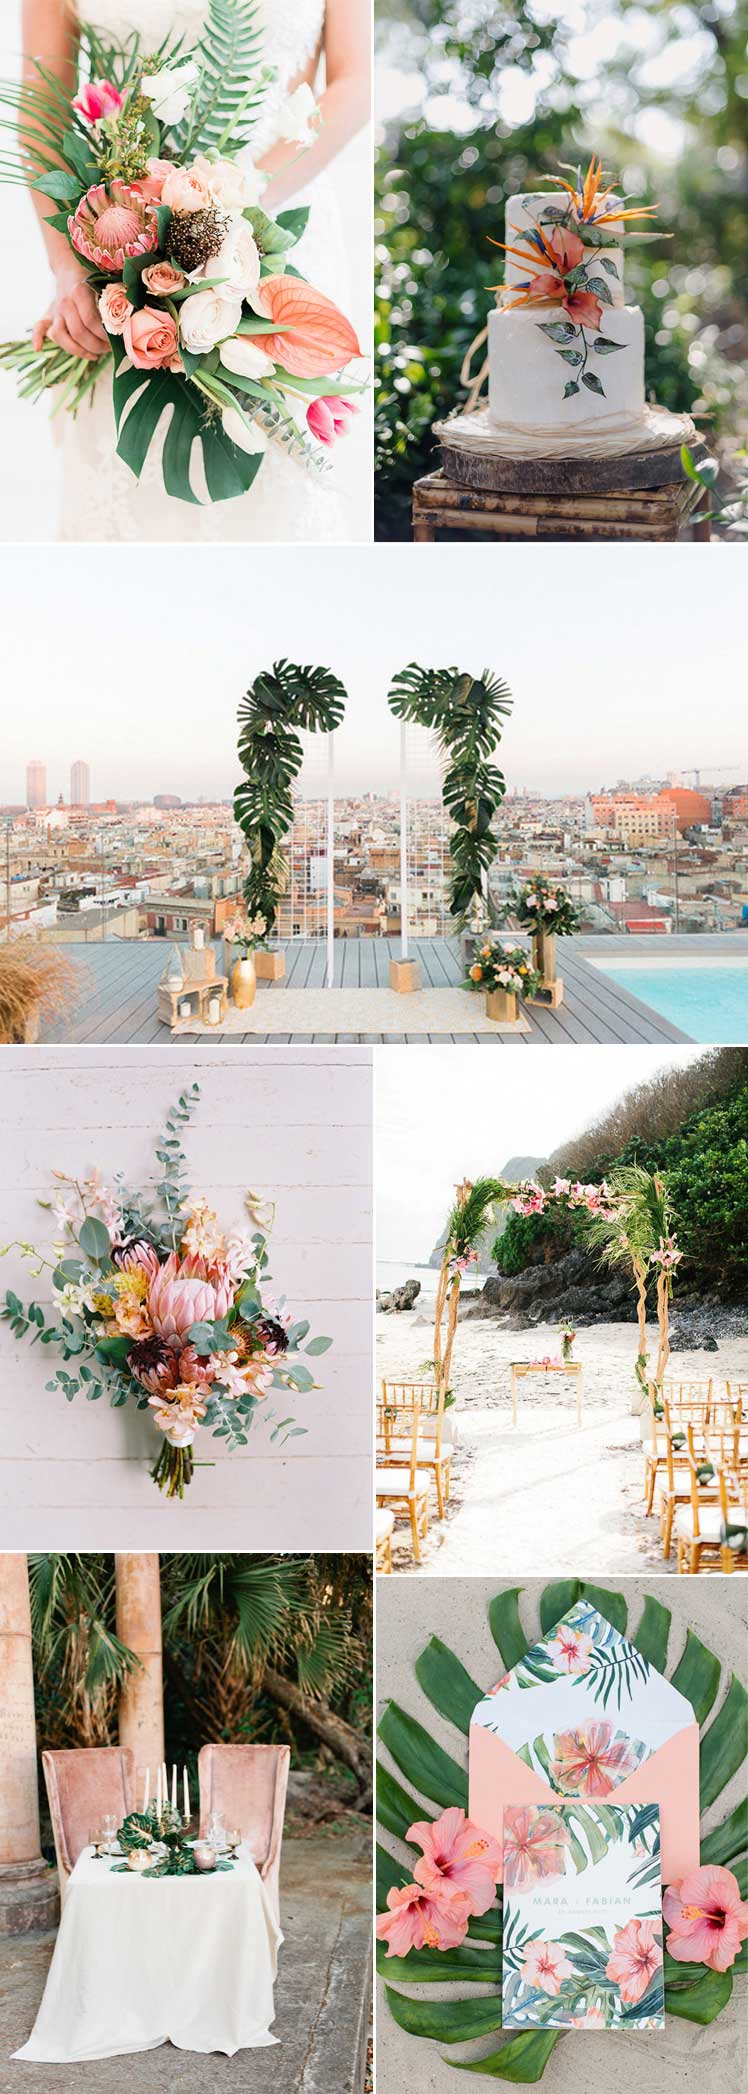 tropical wedding ideas for a summer wedding